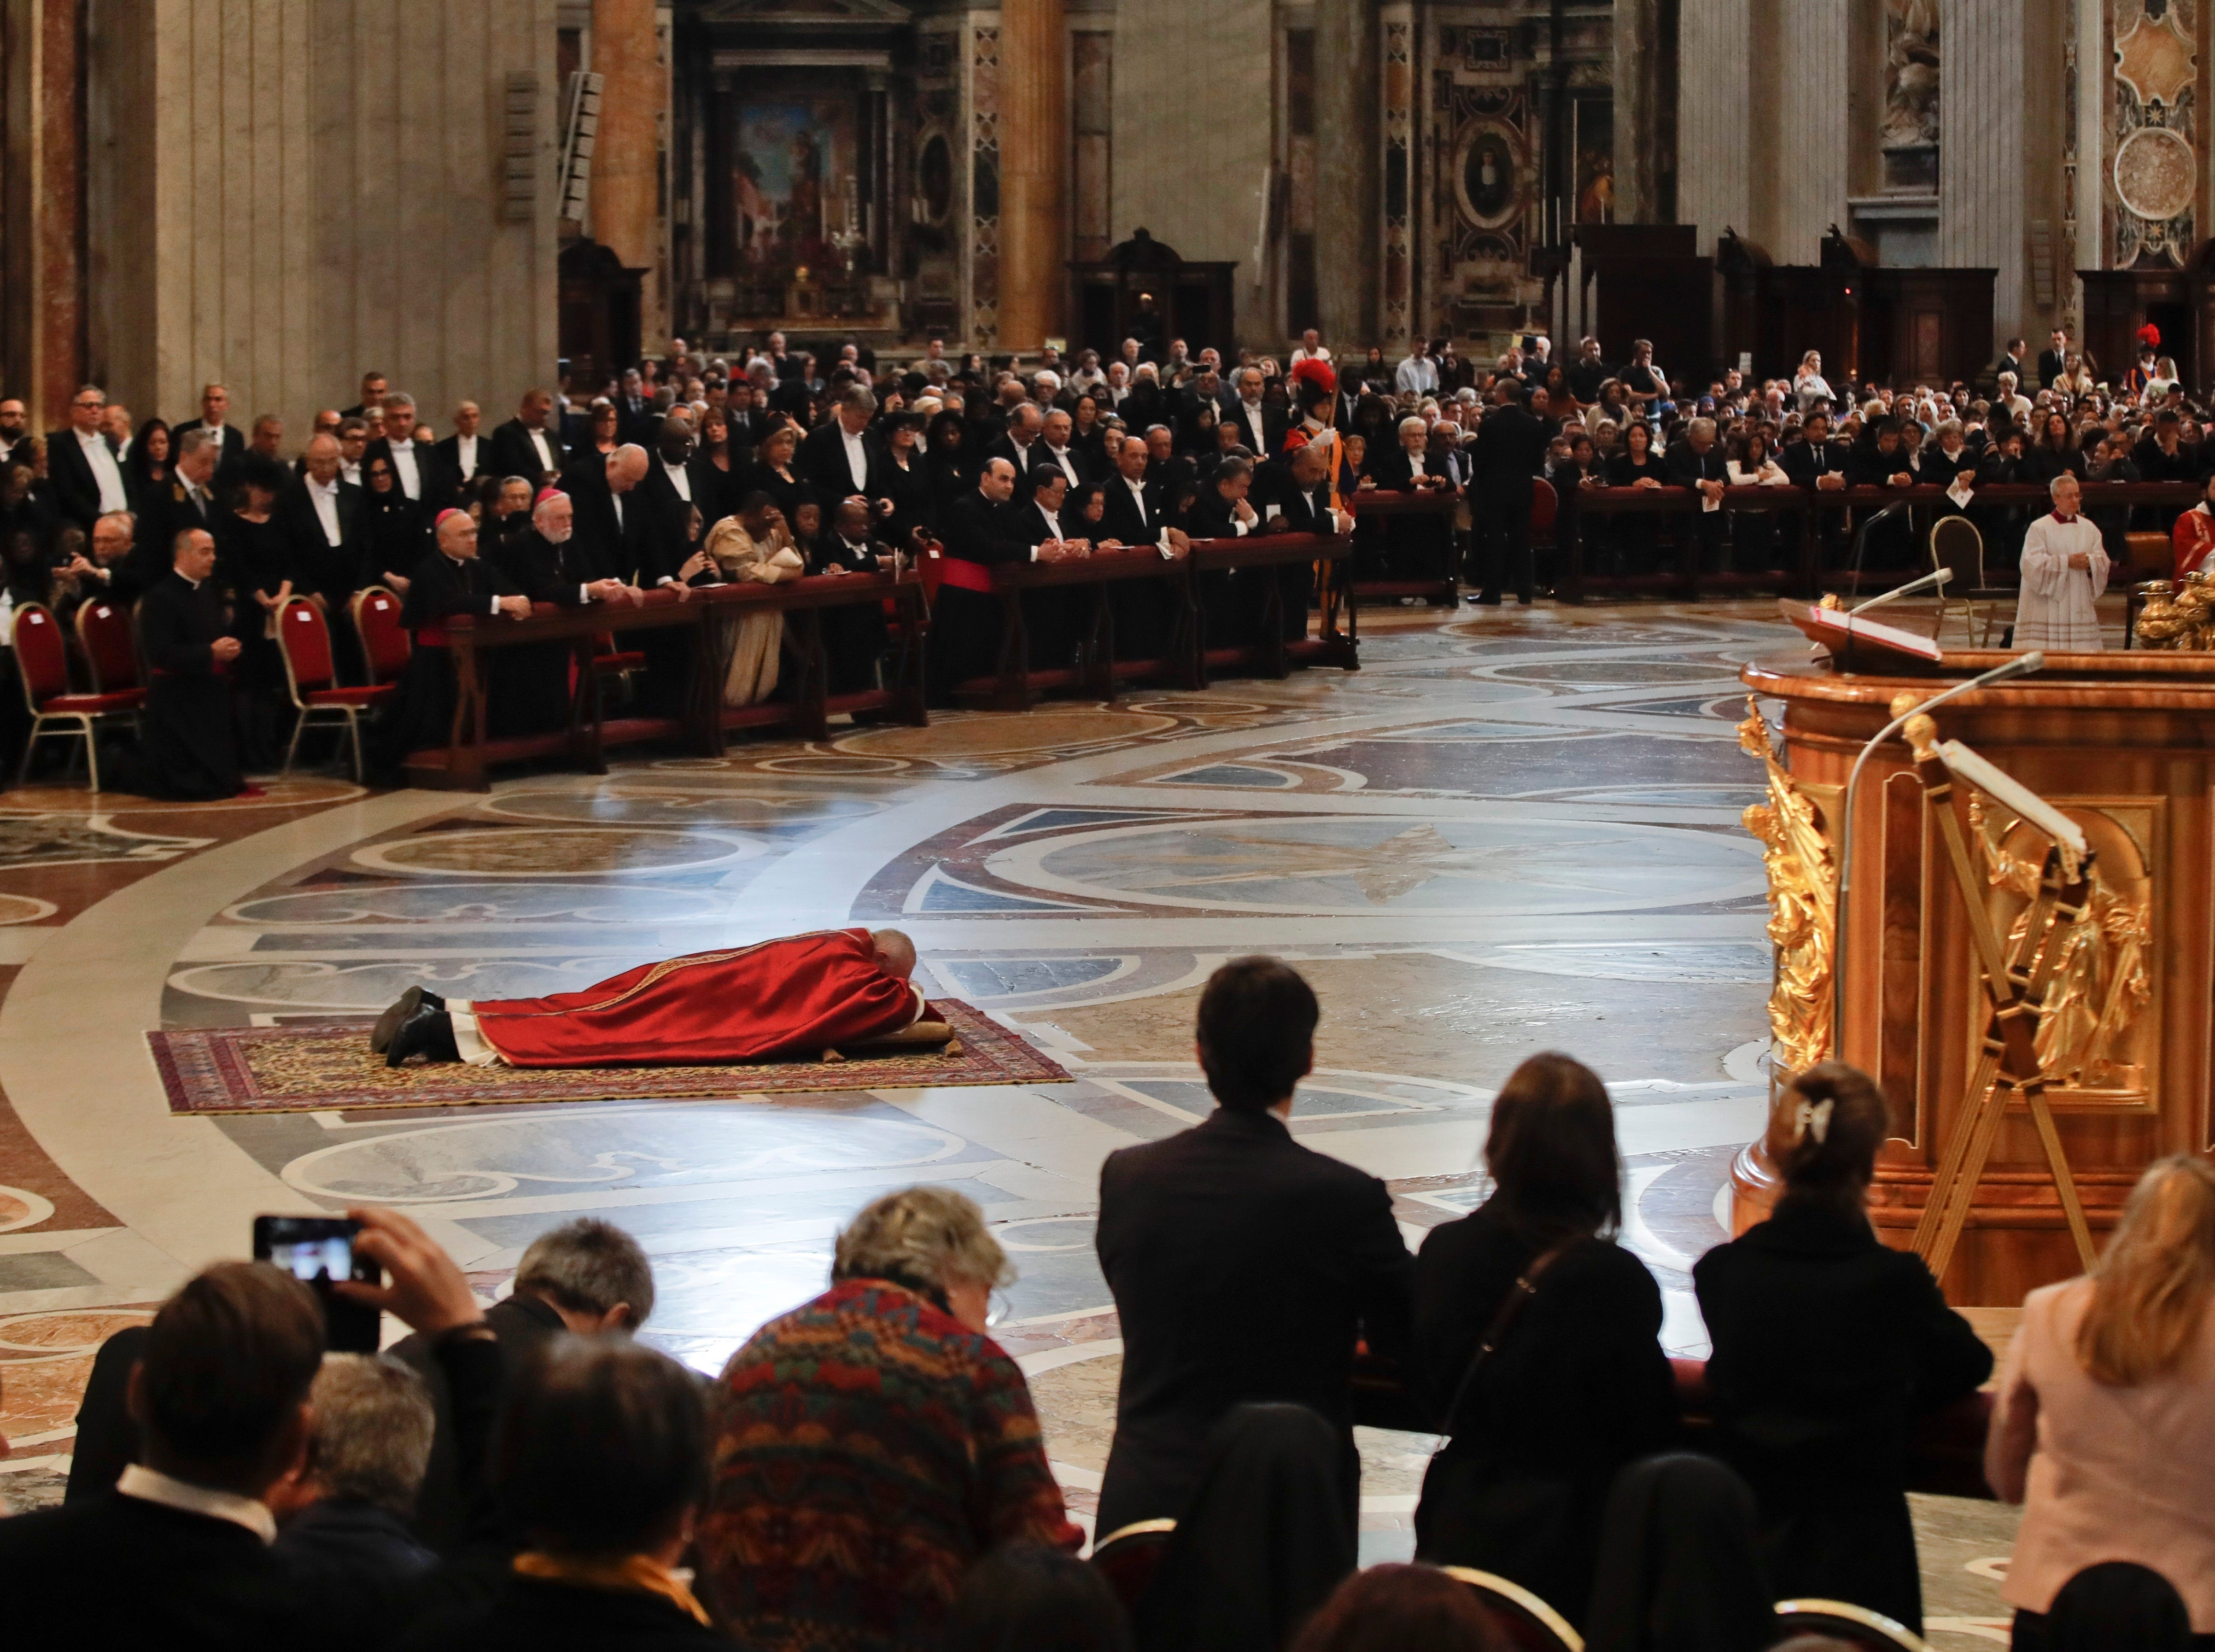 Pope Francis lies down in prayer prior to celebrate Mass for the Passion of Christ at St. Peter's Basilica, at the Vatican, Friday, April 19, 2019. Pope Francis began the Good Friday service at the Vatican with the Passion of Christ Mass and hours later will go to the ancient Colosseum in Rome for the traditional Way of the Cross procession.